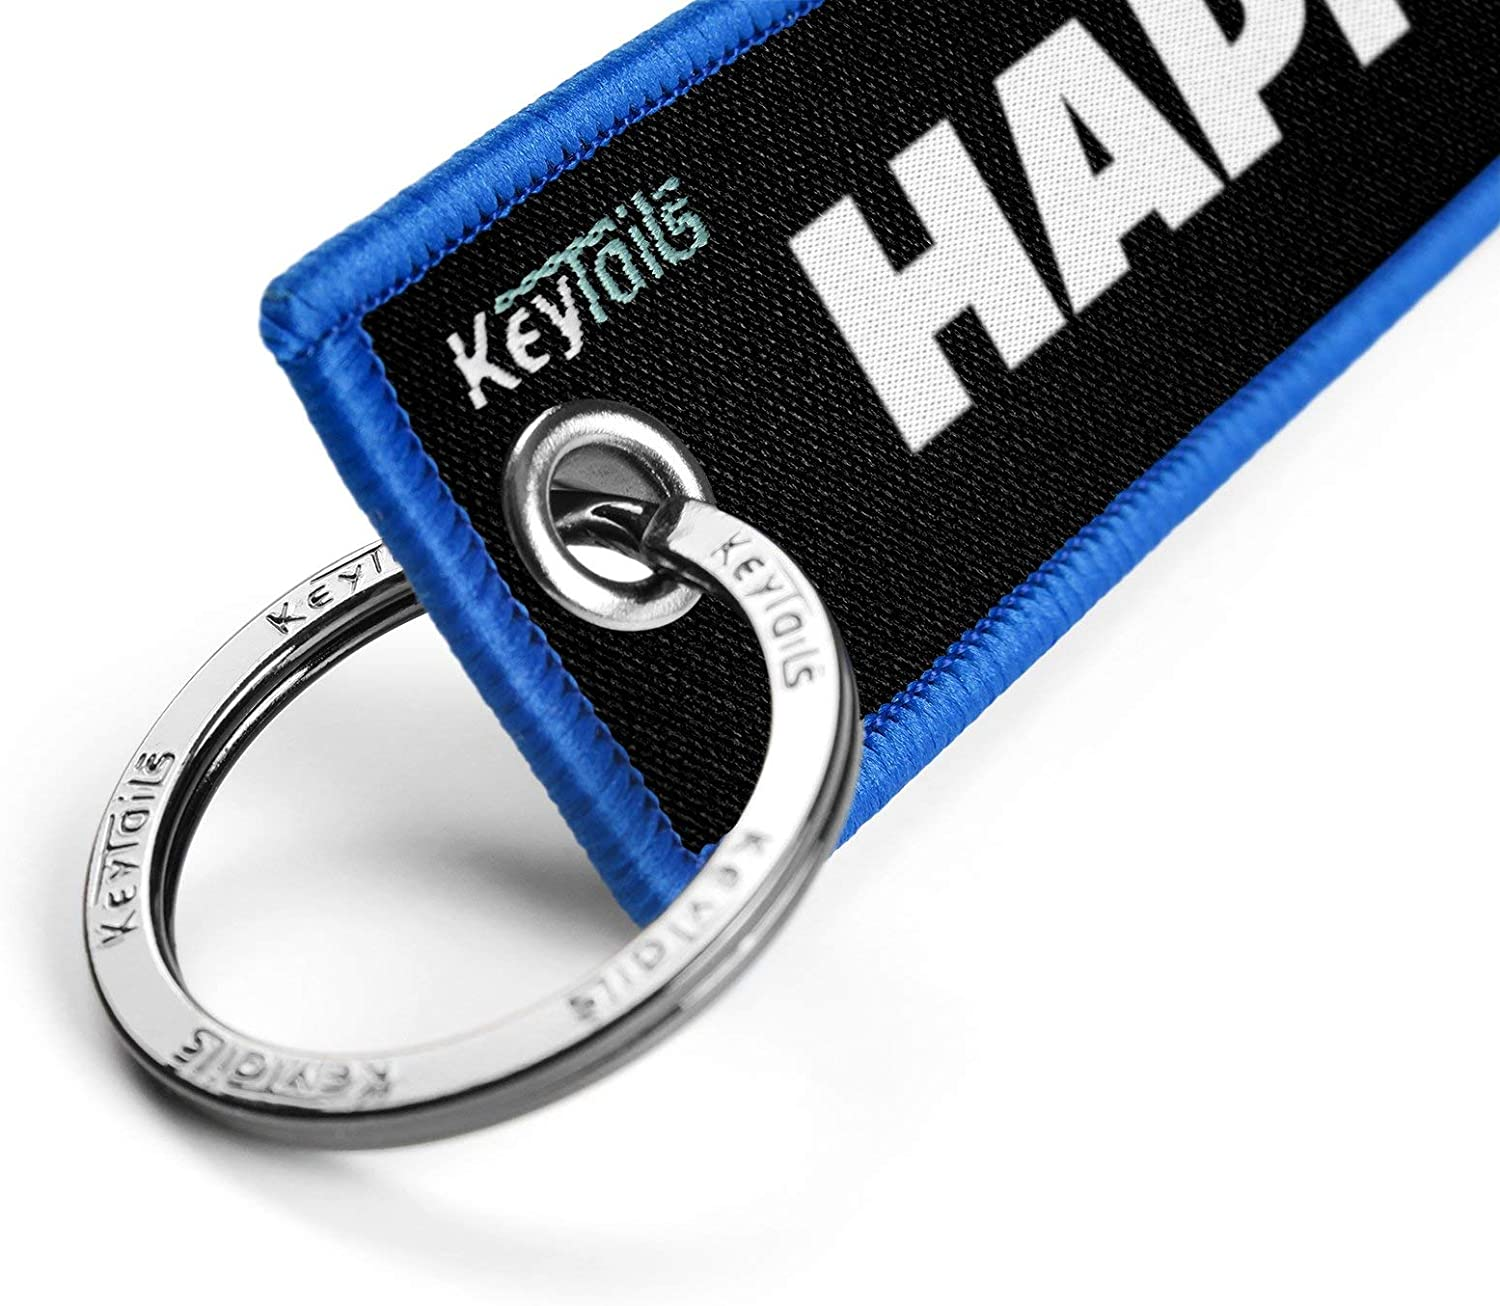 Scooter Key to Happiness UTV ATV Premium Quality Key Tag for Motorcycle KEYTAILS Keychains Car